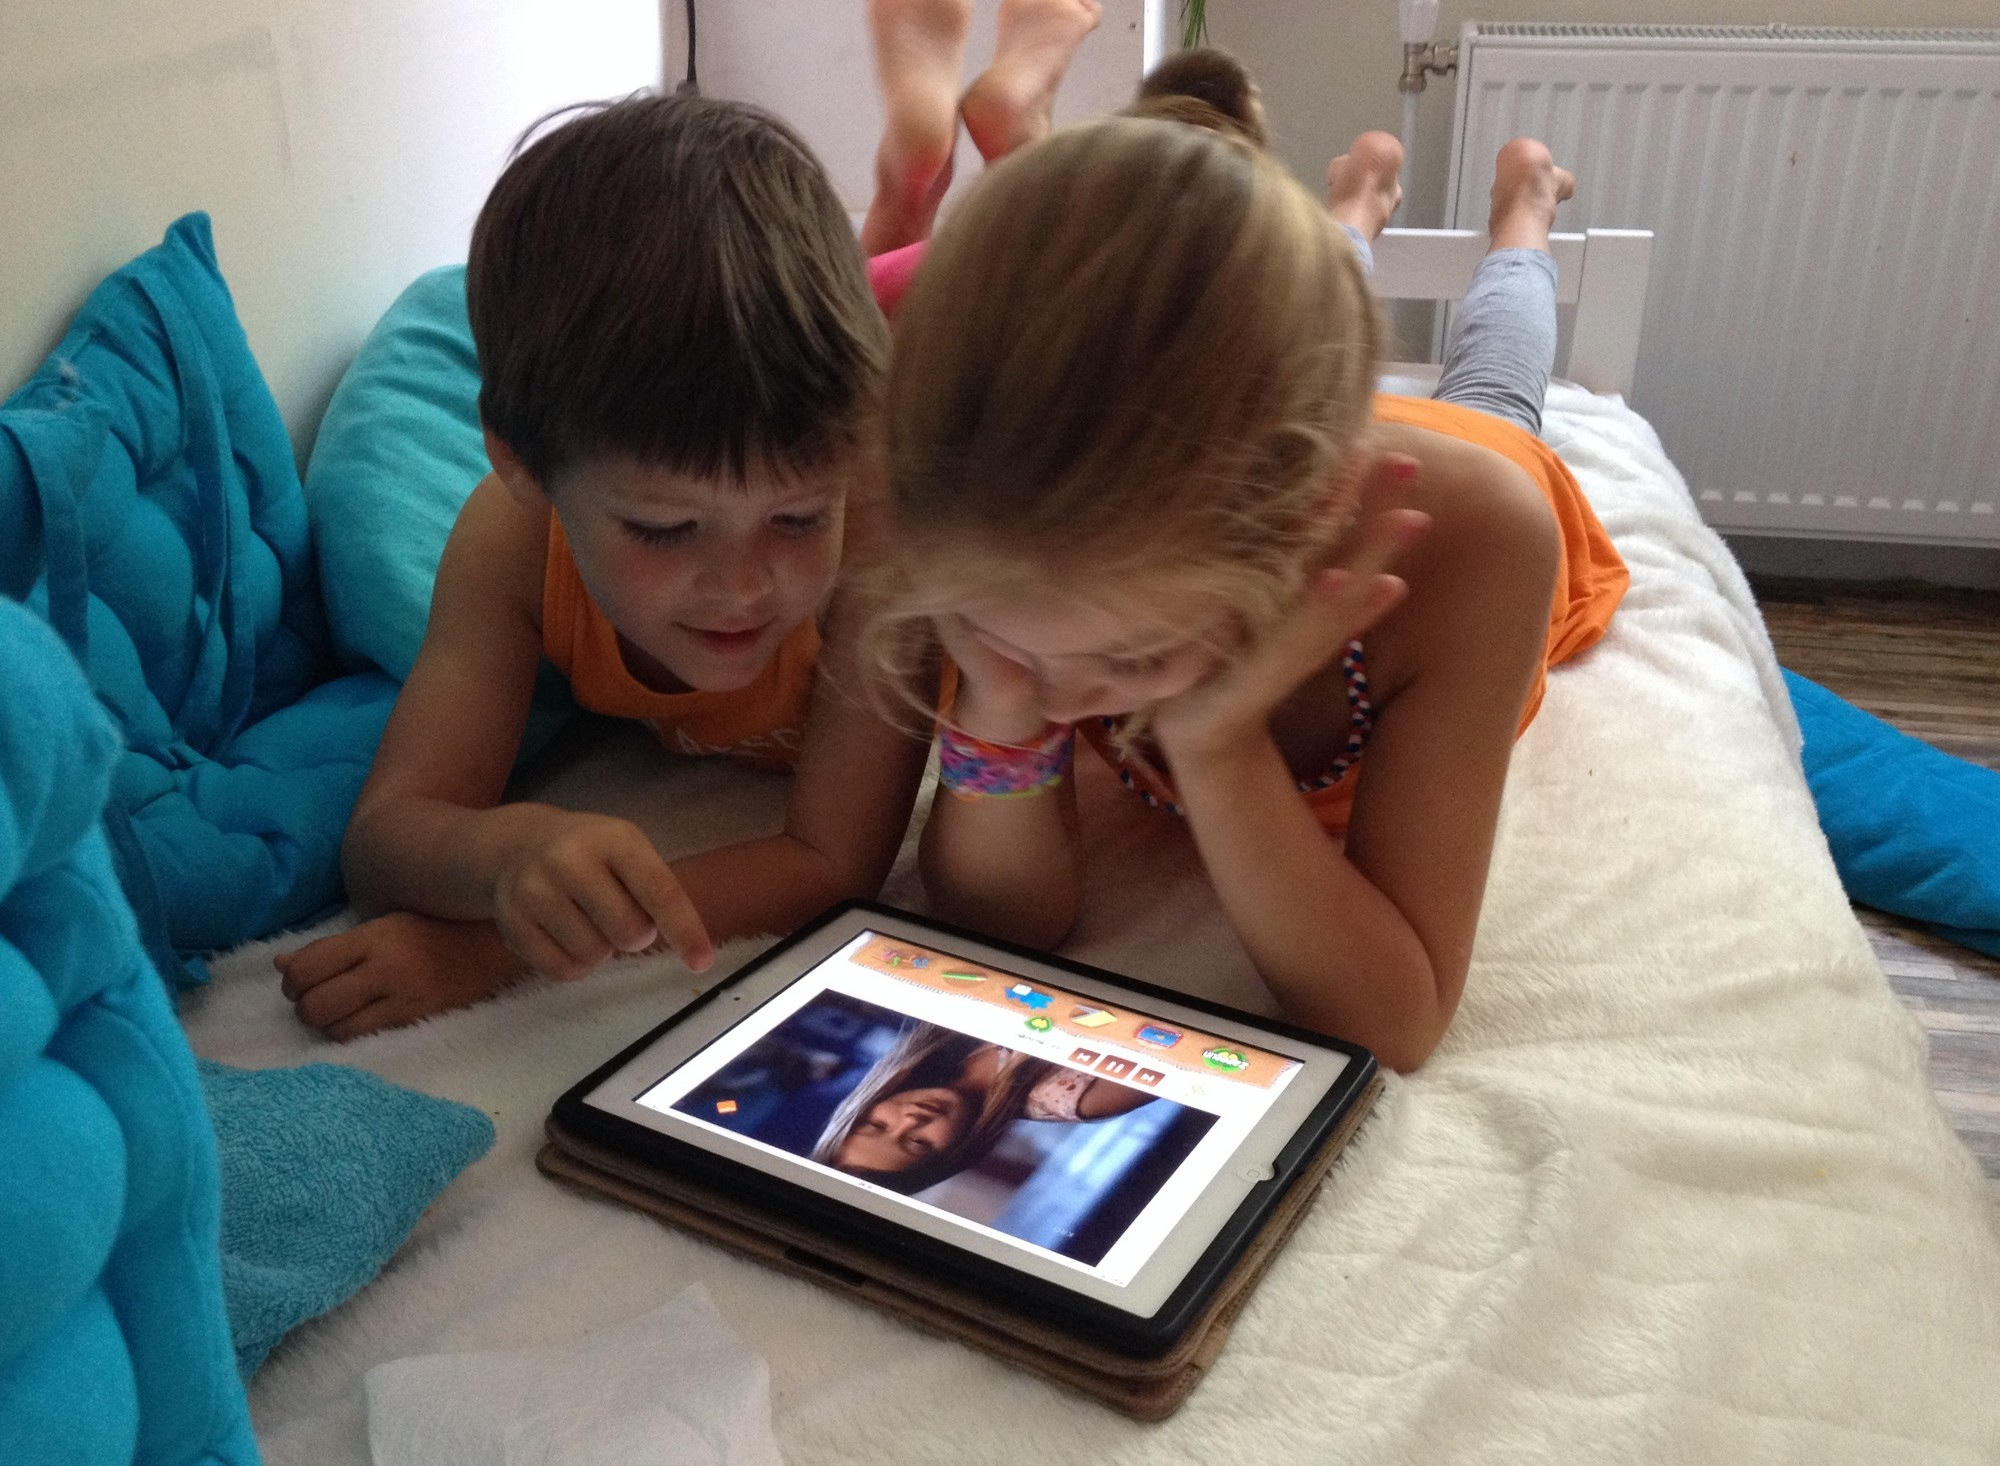 Blog Denise: Digikids